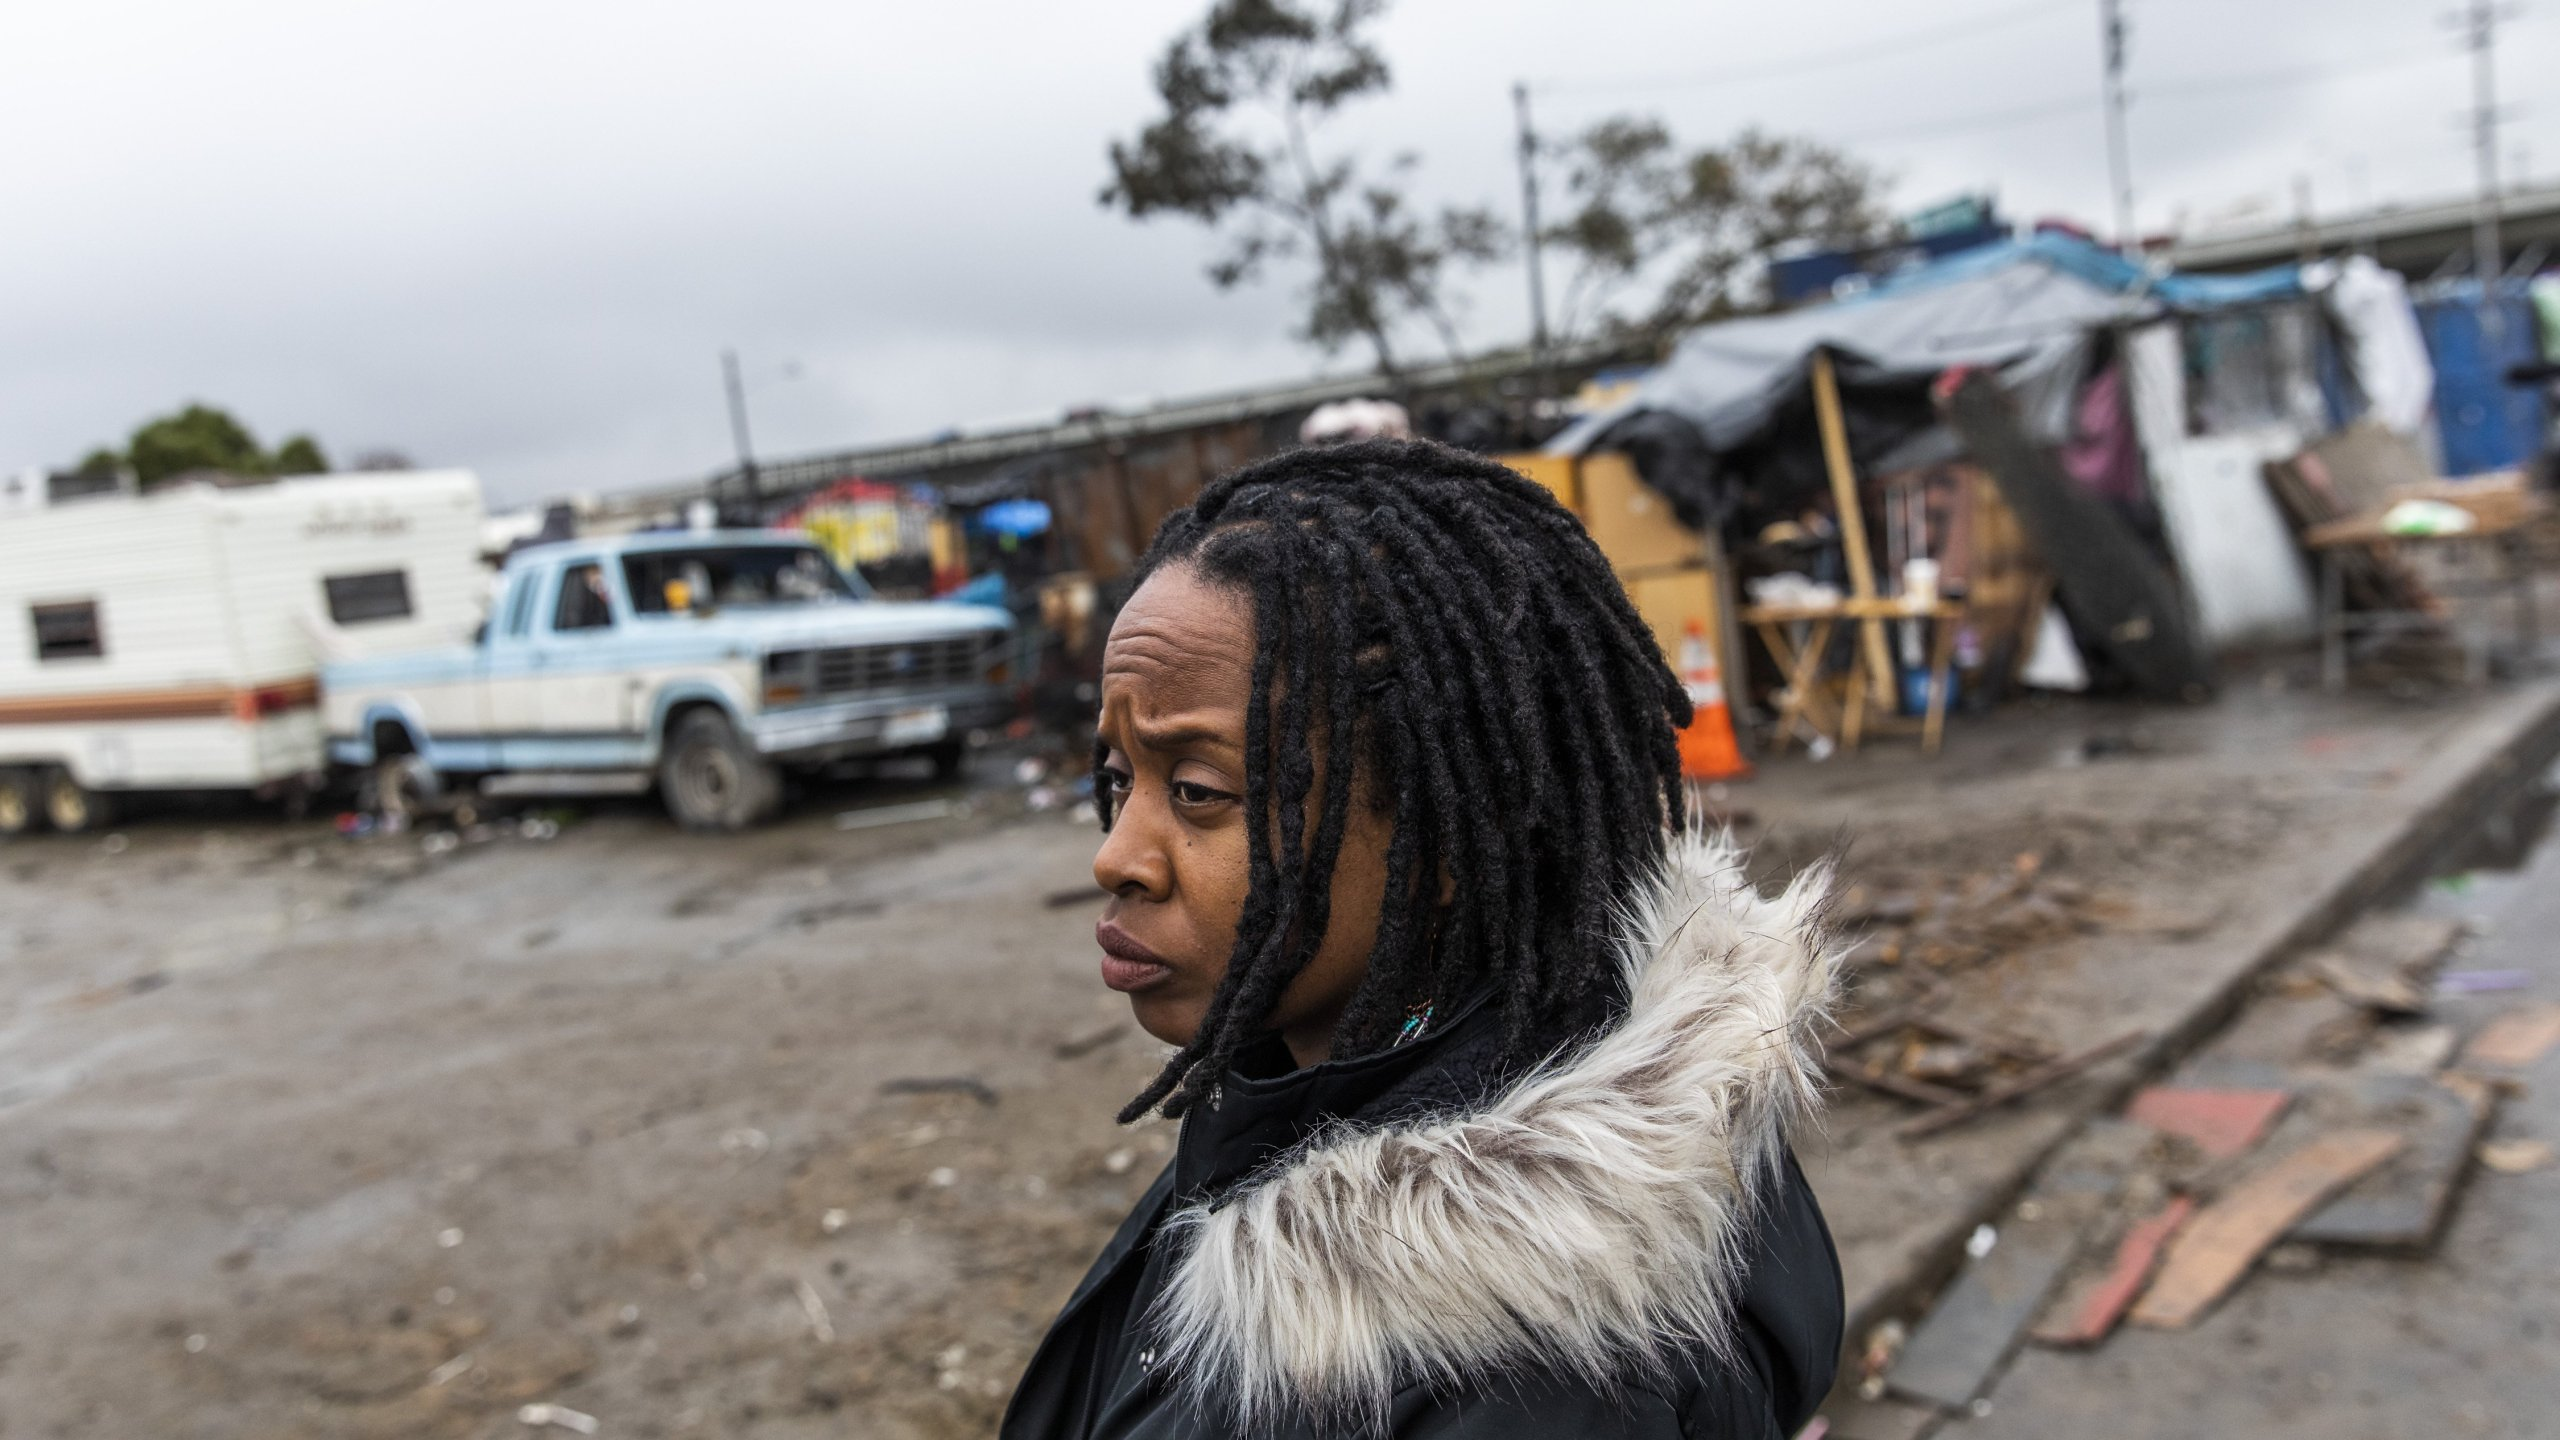 Carroll Fife, director of the Oakland office for the Alliance of Californians for Community Empowerment, stands outside a homeless encampment in Oakland on Jan. 28, 2020. (Credit: Philip Pacheco / AFP / Getty Images)